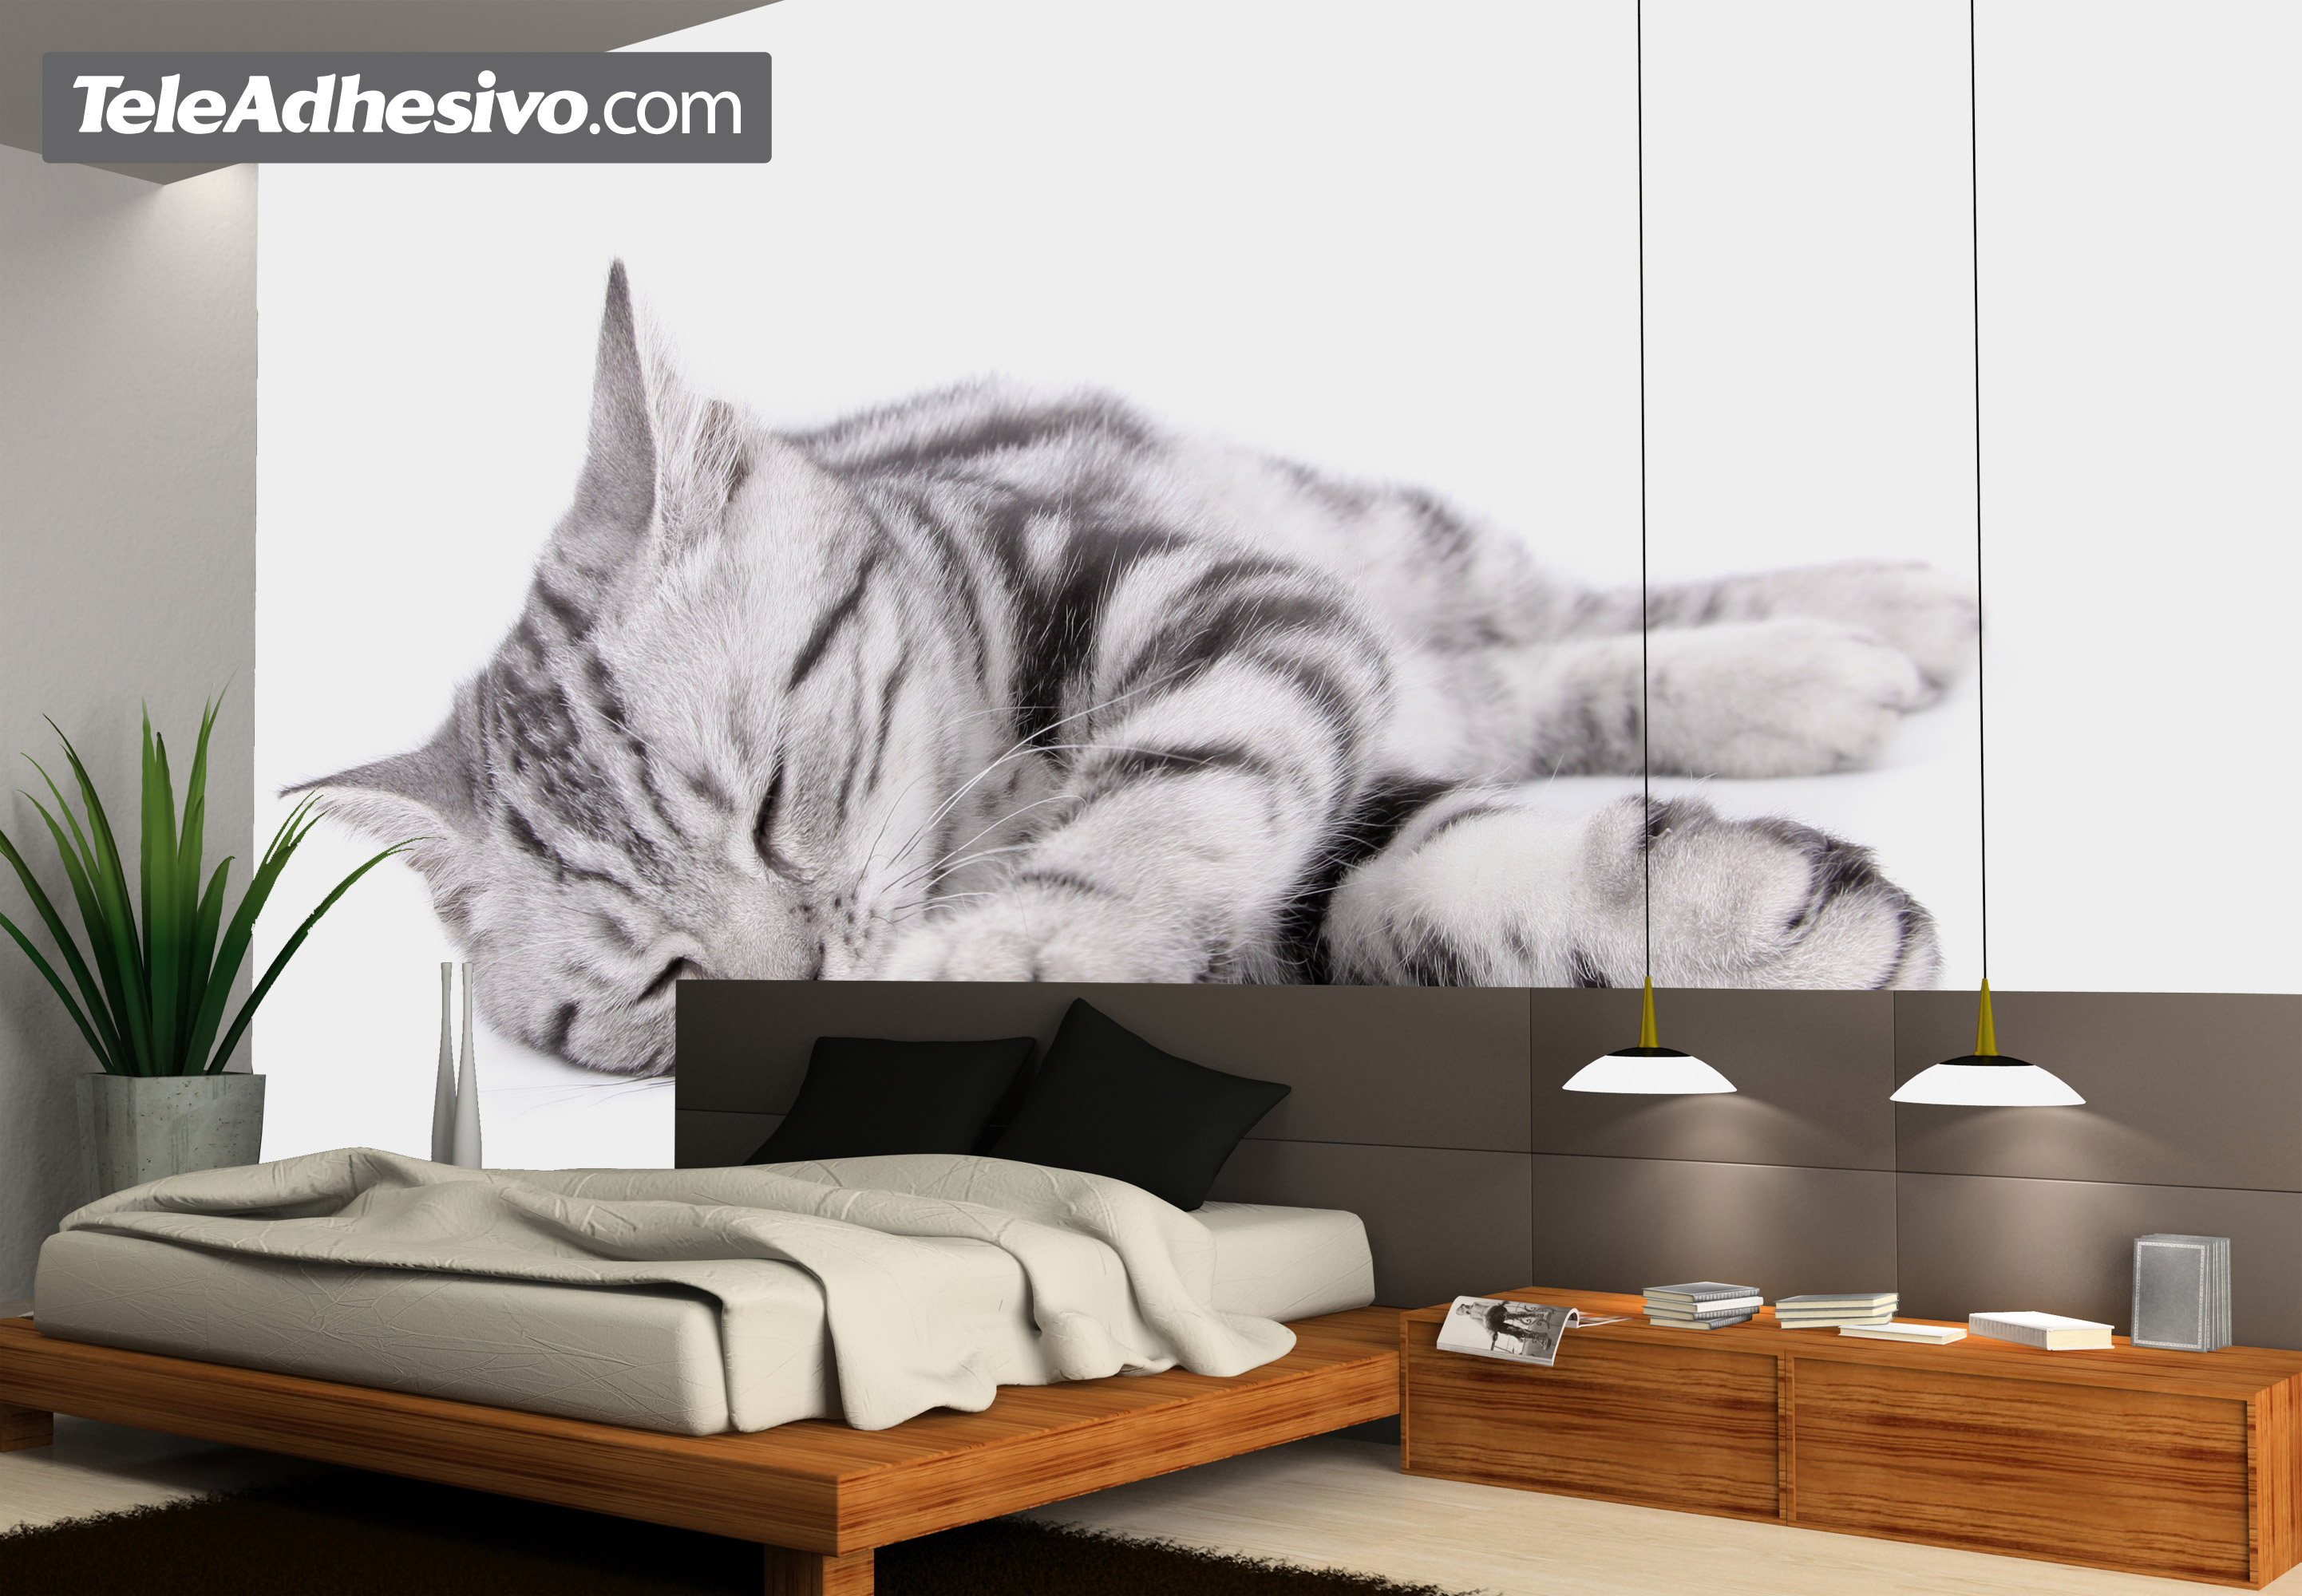 28 cat wall murals lamp and cat wall removable decal cat wall murals naughty cat